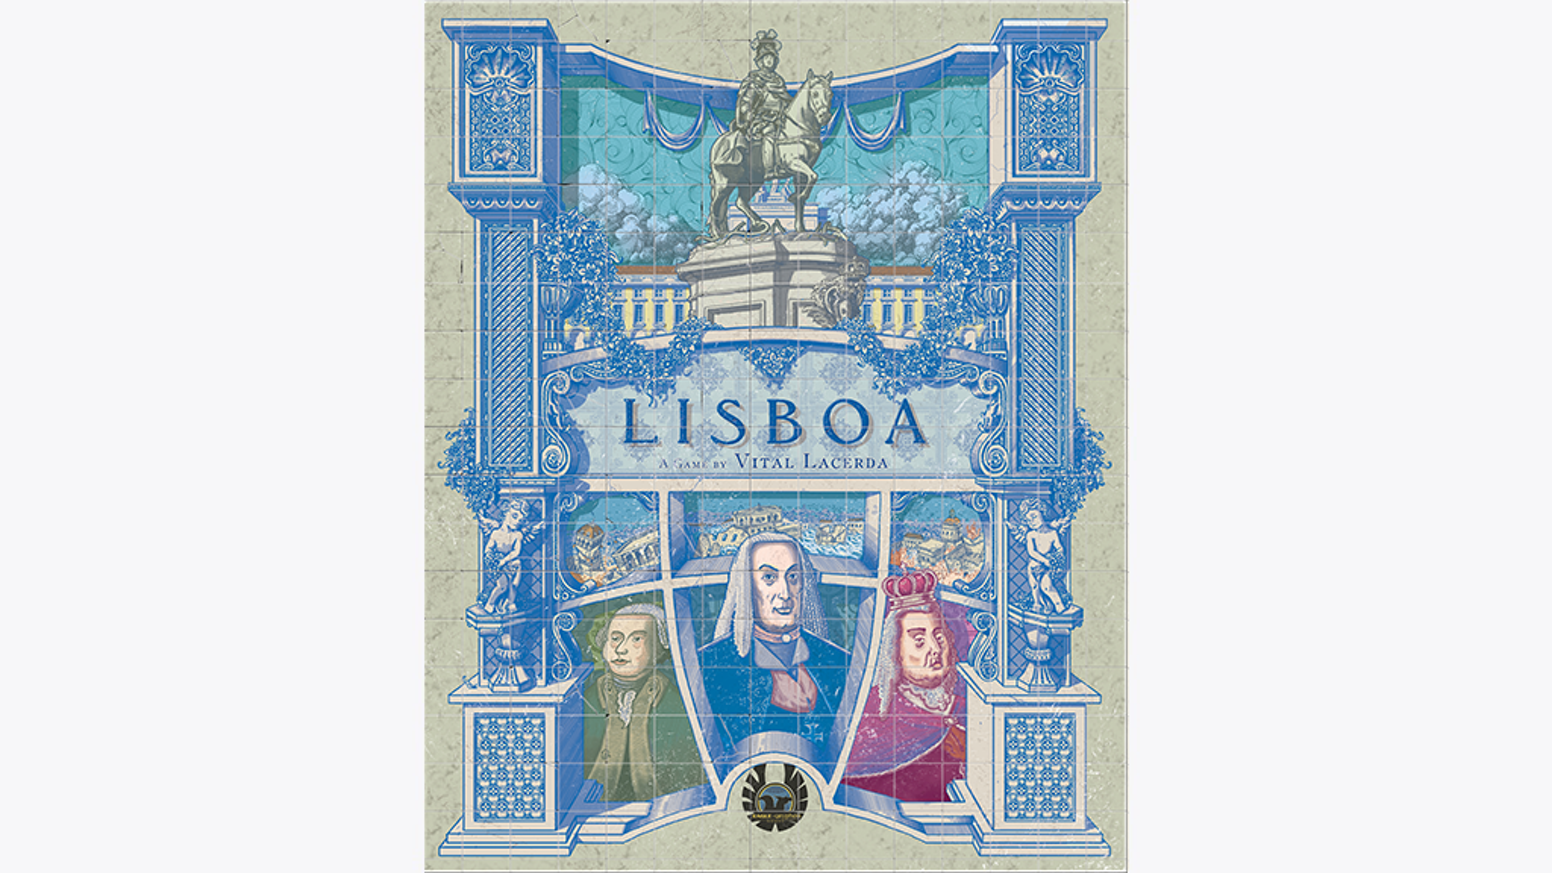 Reconstruct the great city of Lisboa after the 1755 earthquake, tsunami and fires. Help the King, Marquis & architects. Earn WIGS!